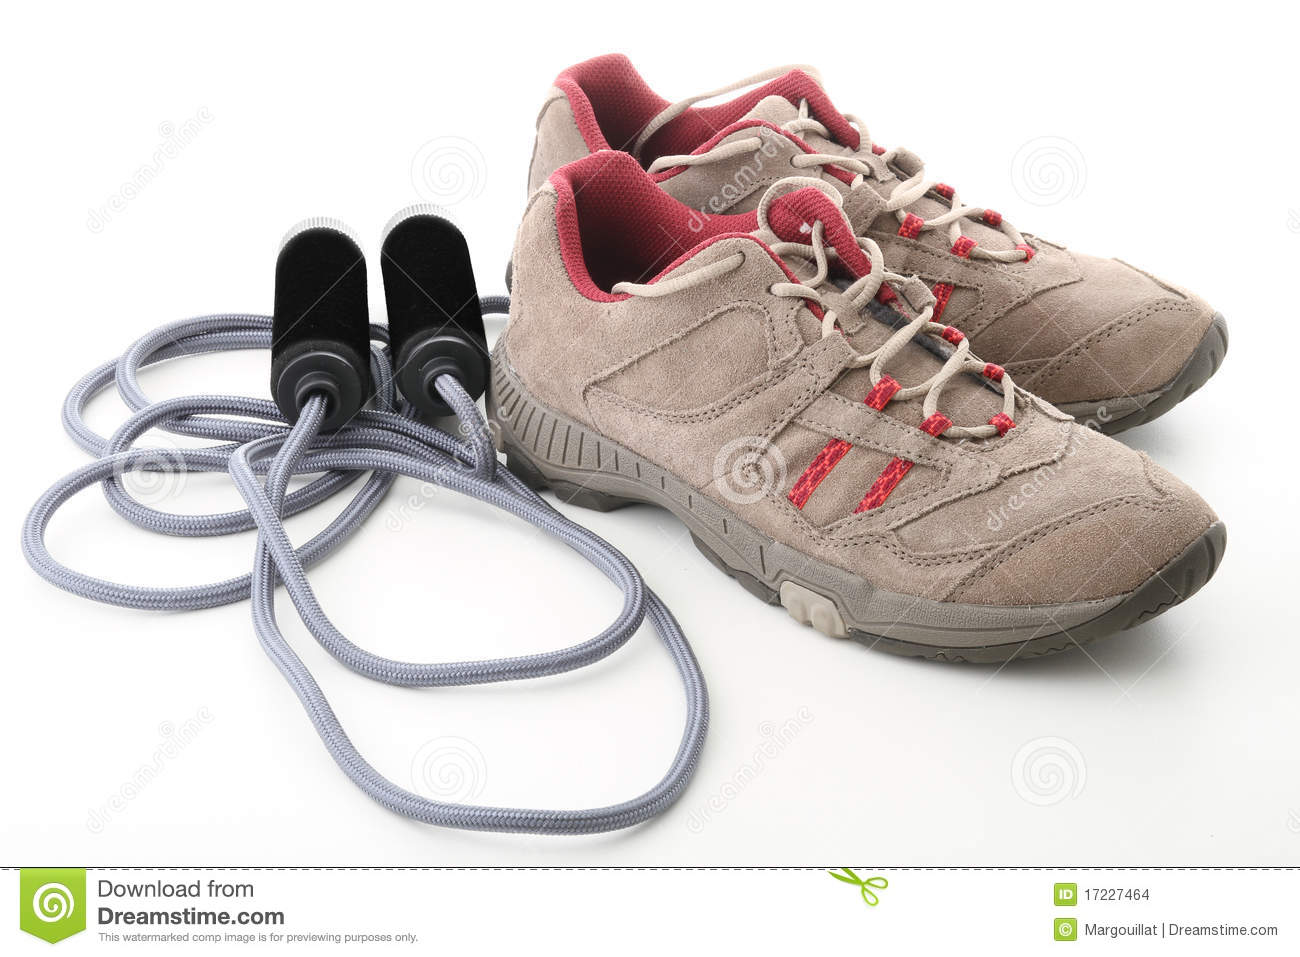 Best shoes for jump rope